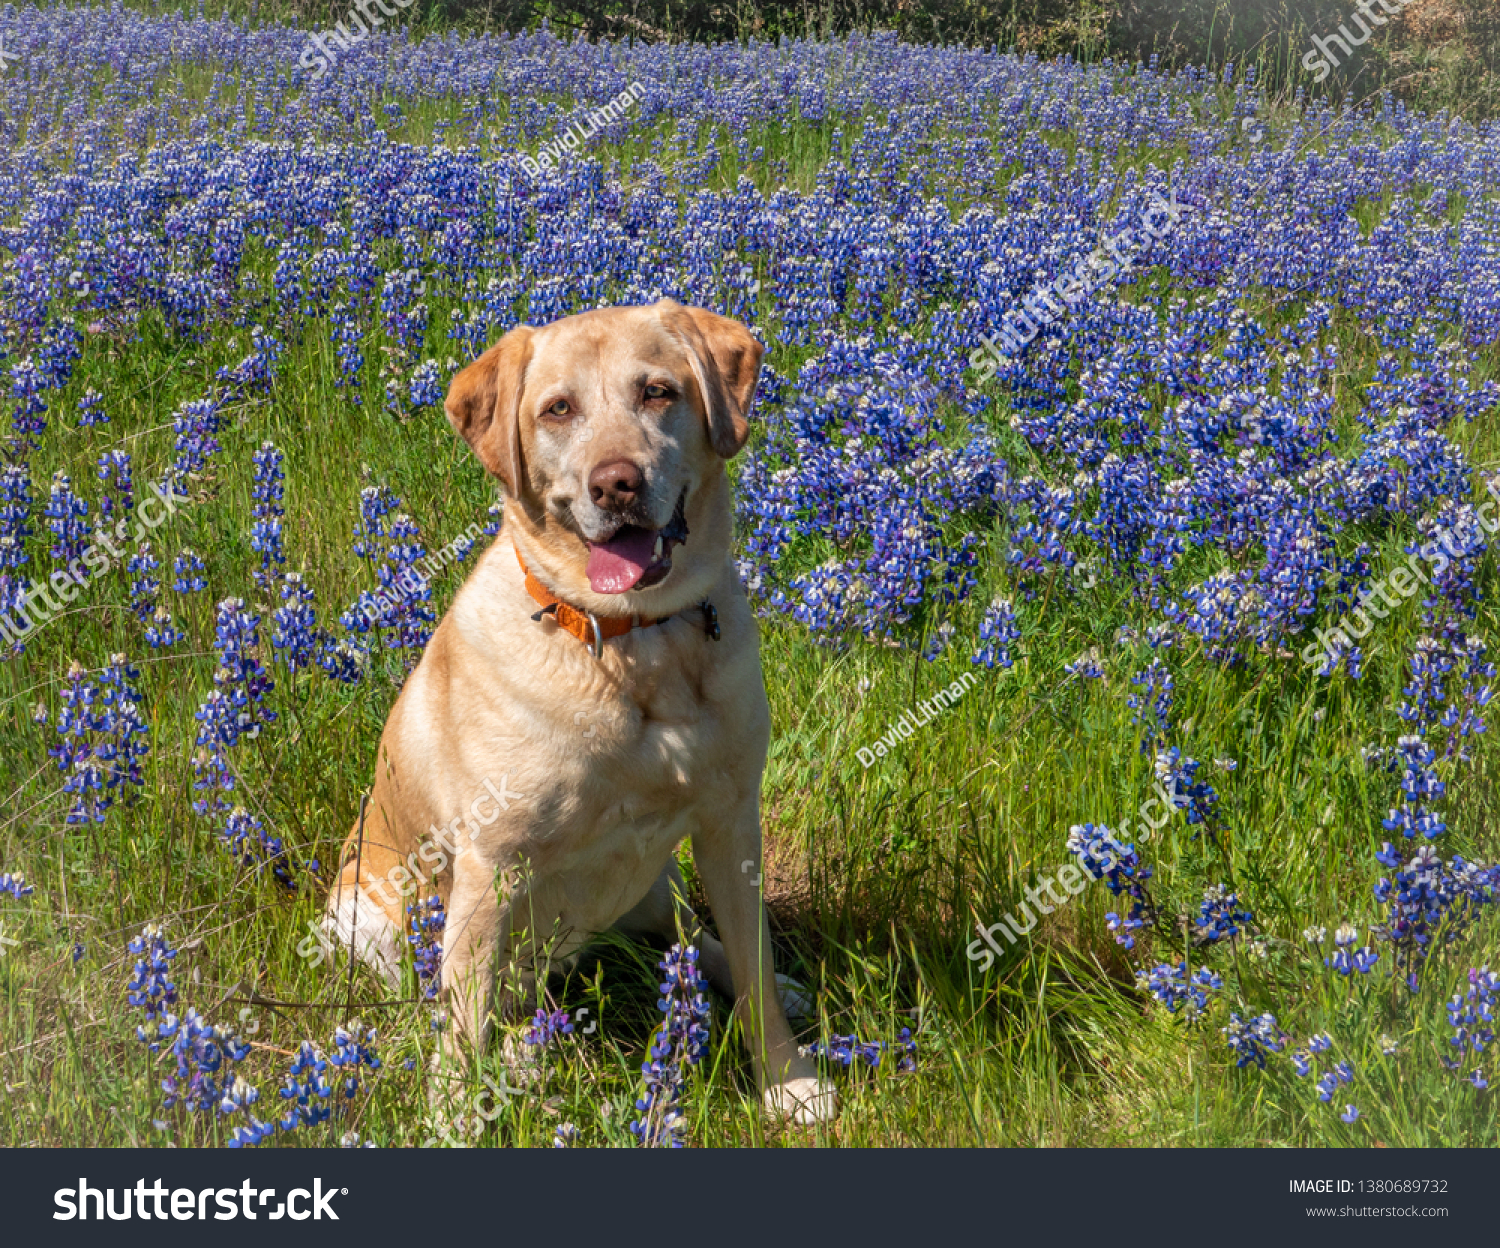 A happy yellow Labrador Retriever dog sits in a meadow of blue and purple Lupine wildflowers (Lupinus nanus) in the hills of Monterey, California.